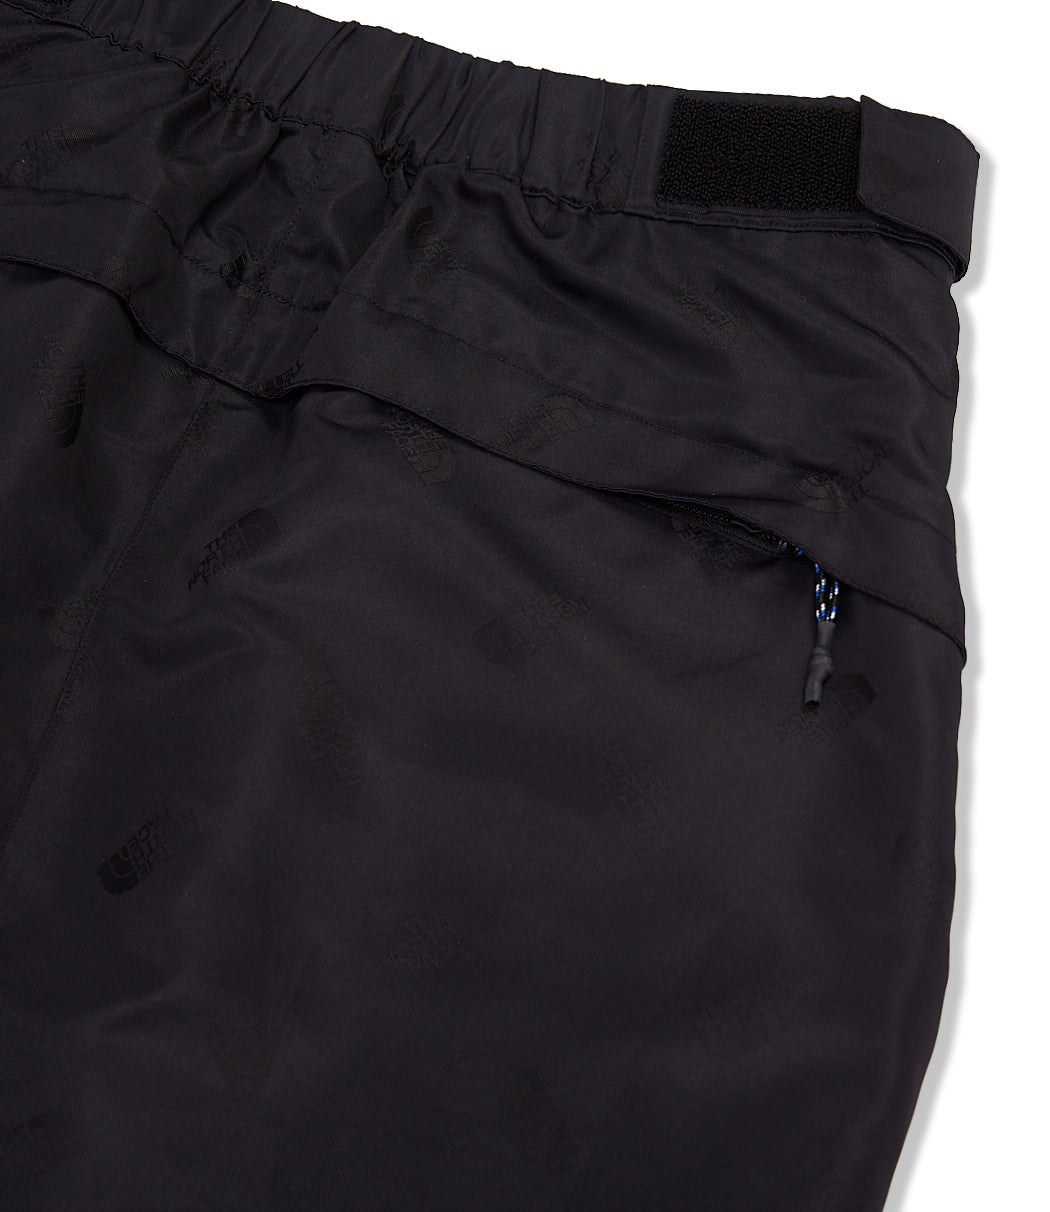 THE NORTH FACE W BLACK SERIES TNF LOGO JACQUARD SKIRT